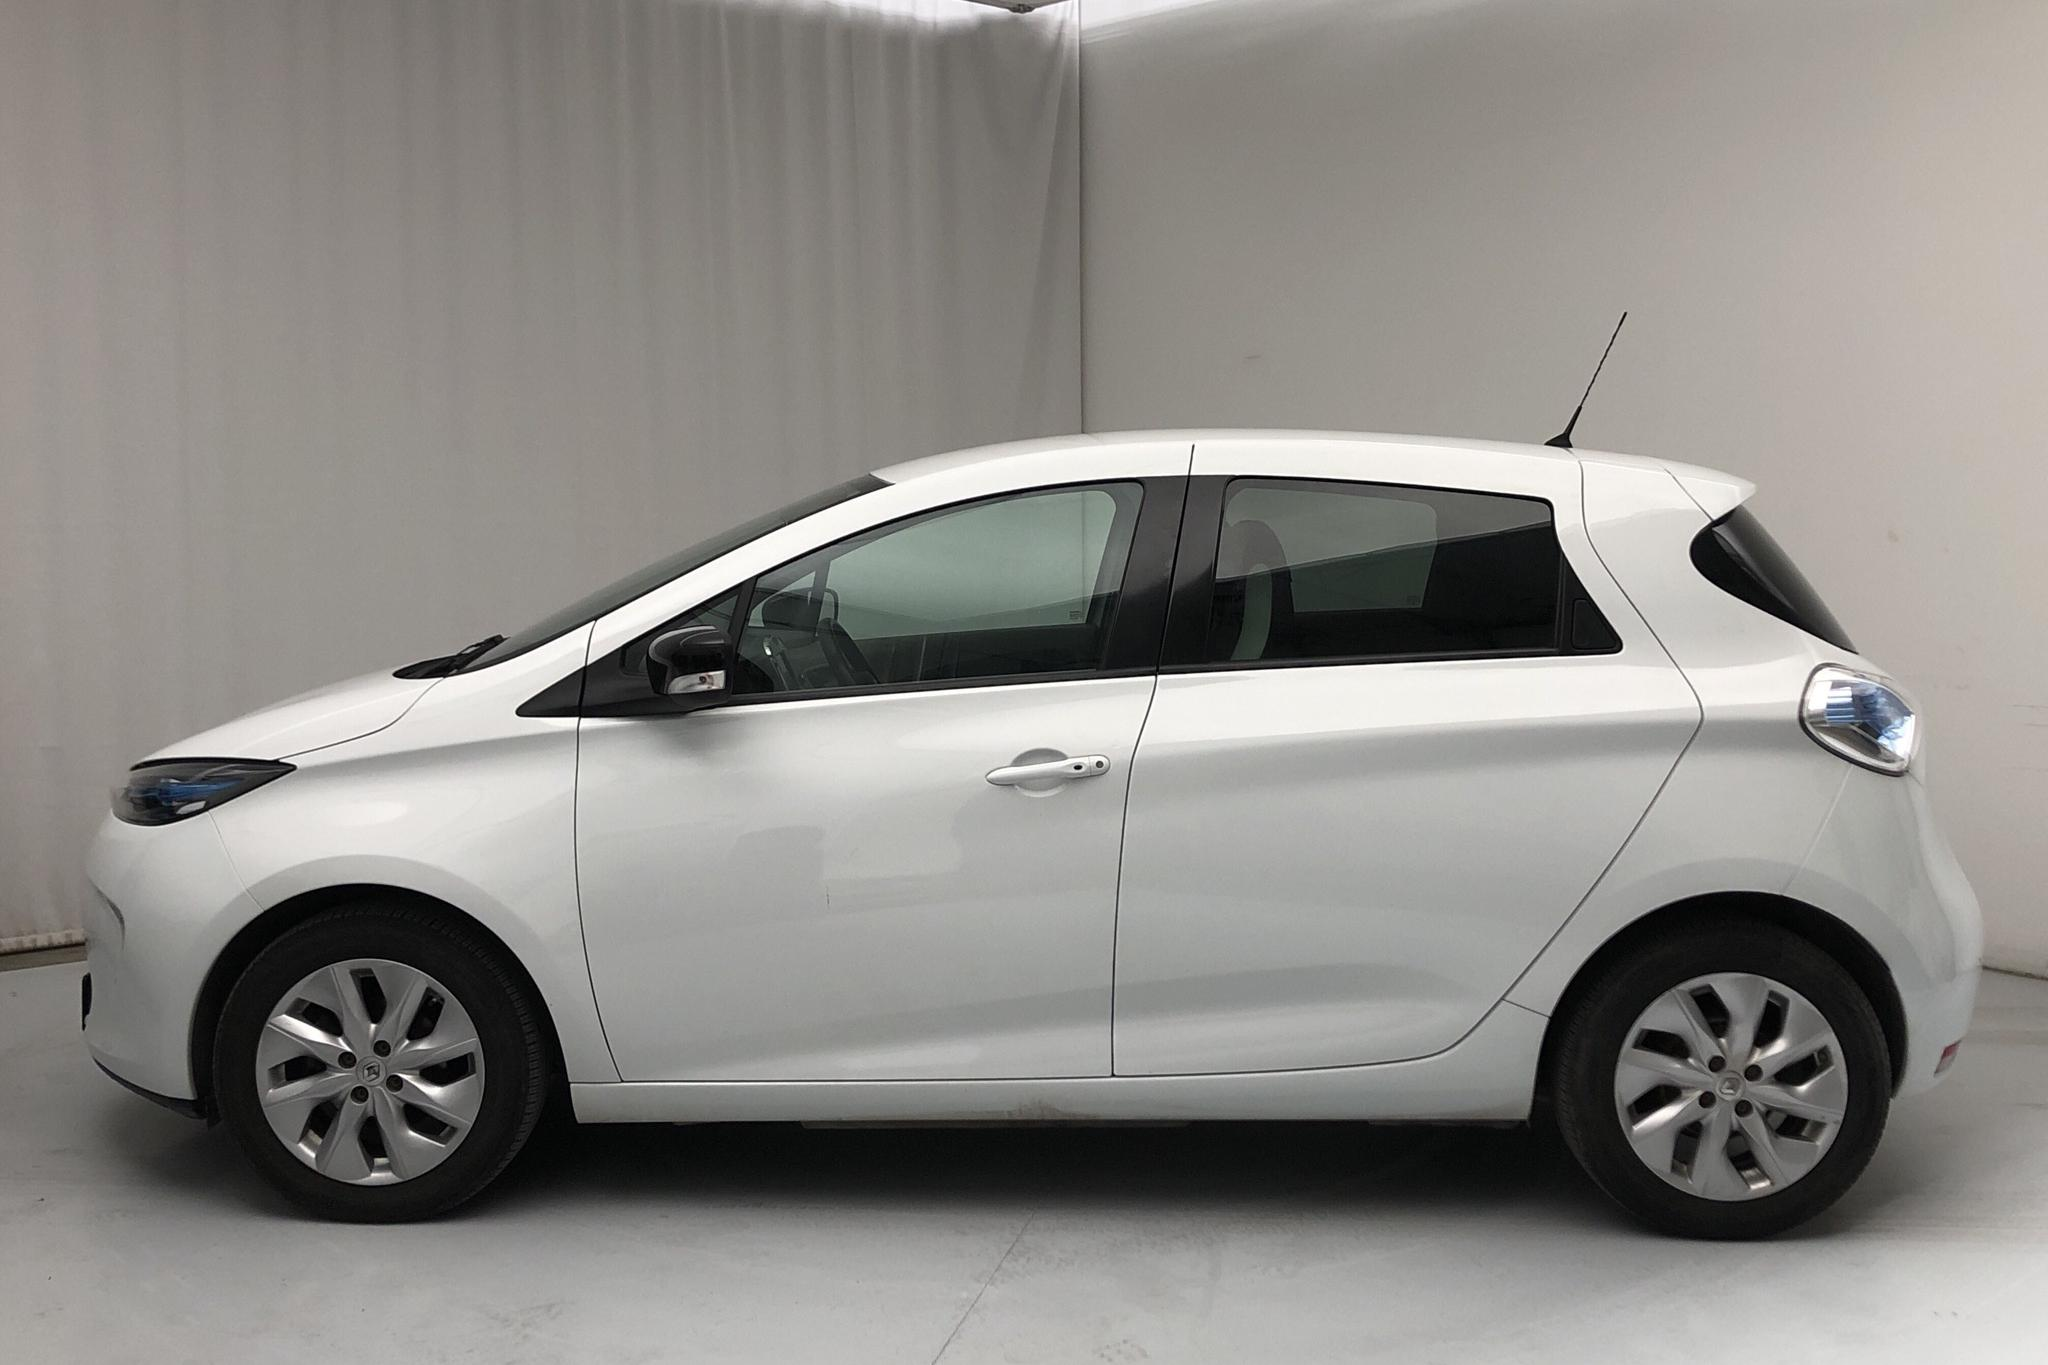 Renault Zoe 22 kWh (88hk) - 39 520 km - Automatic - white - 2017